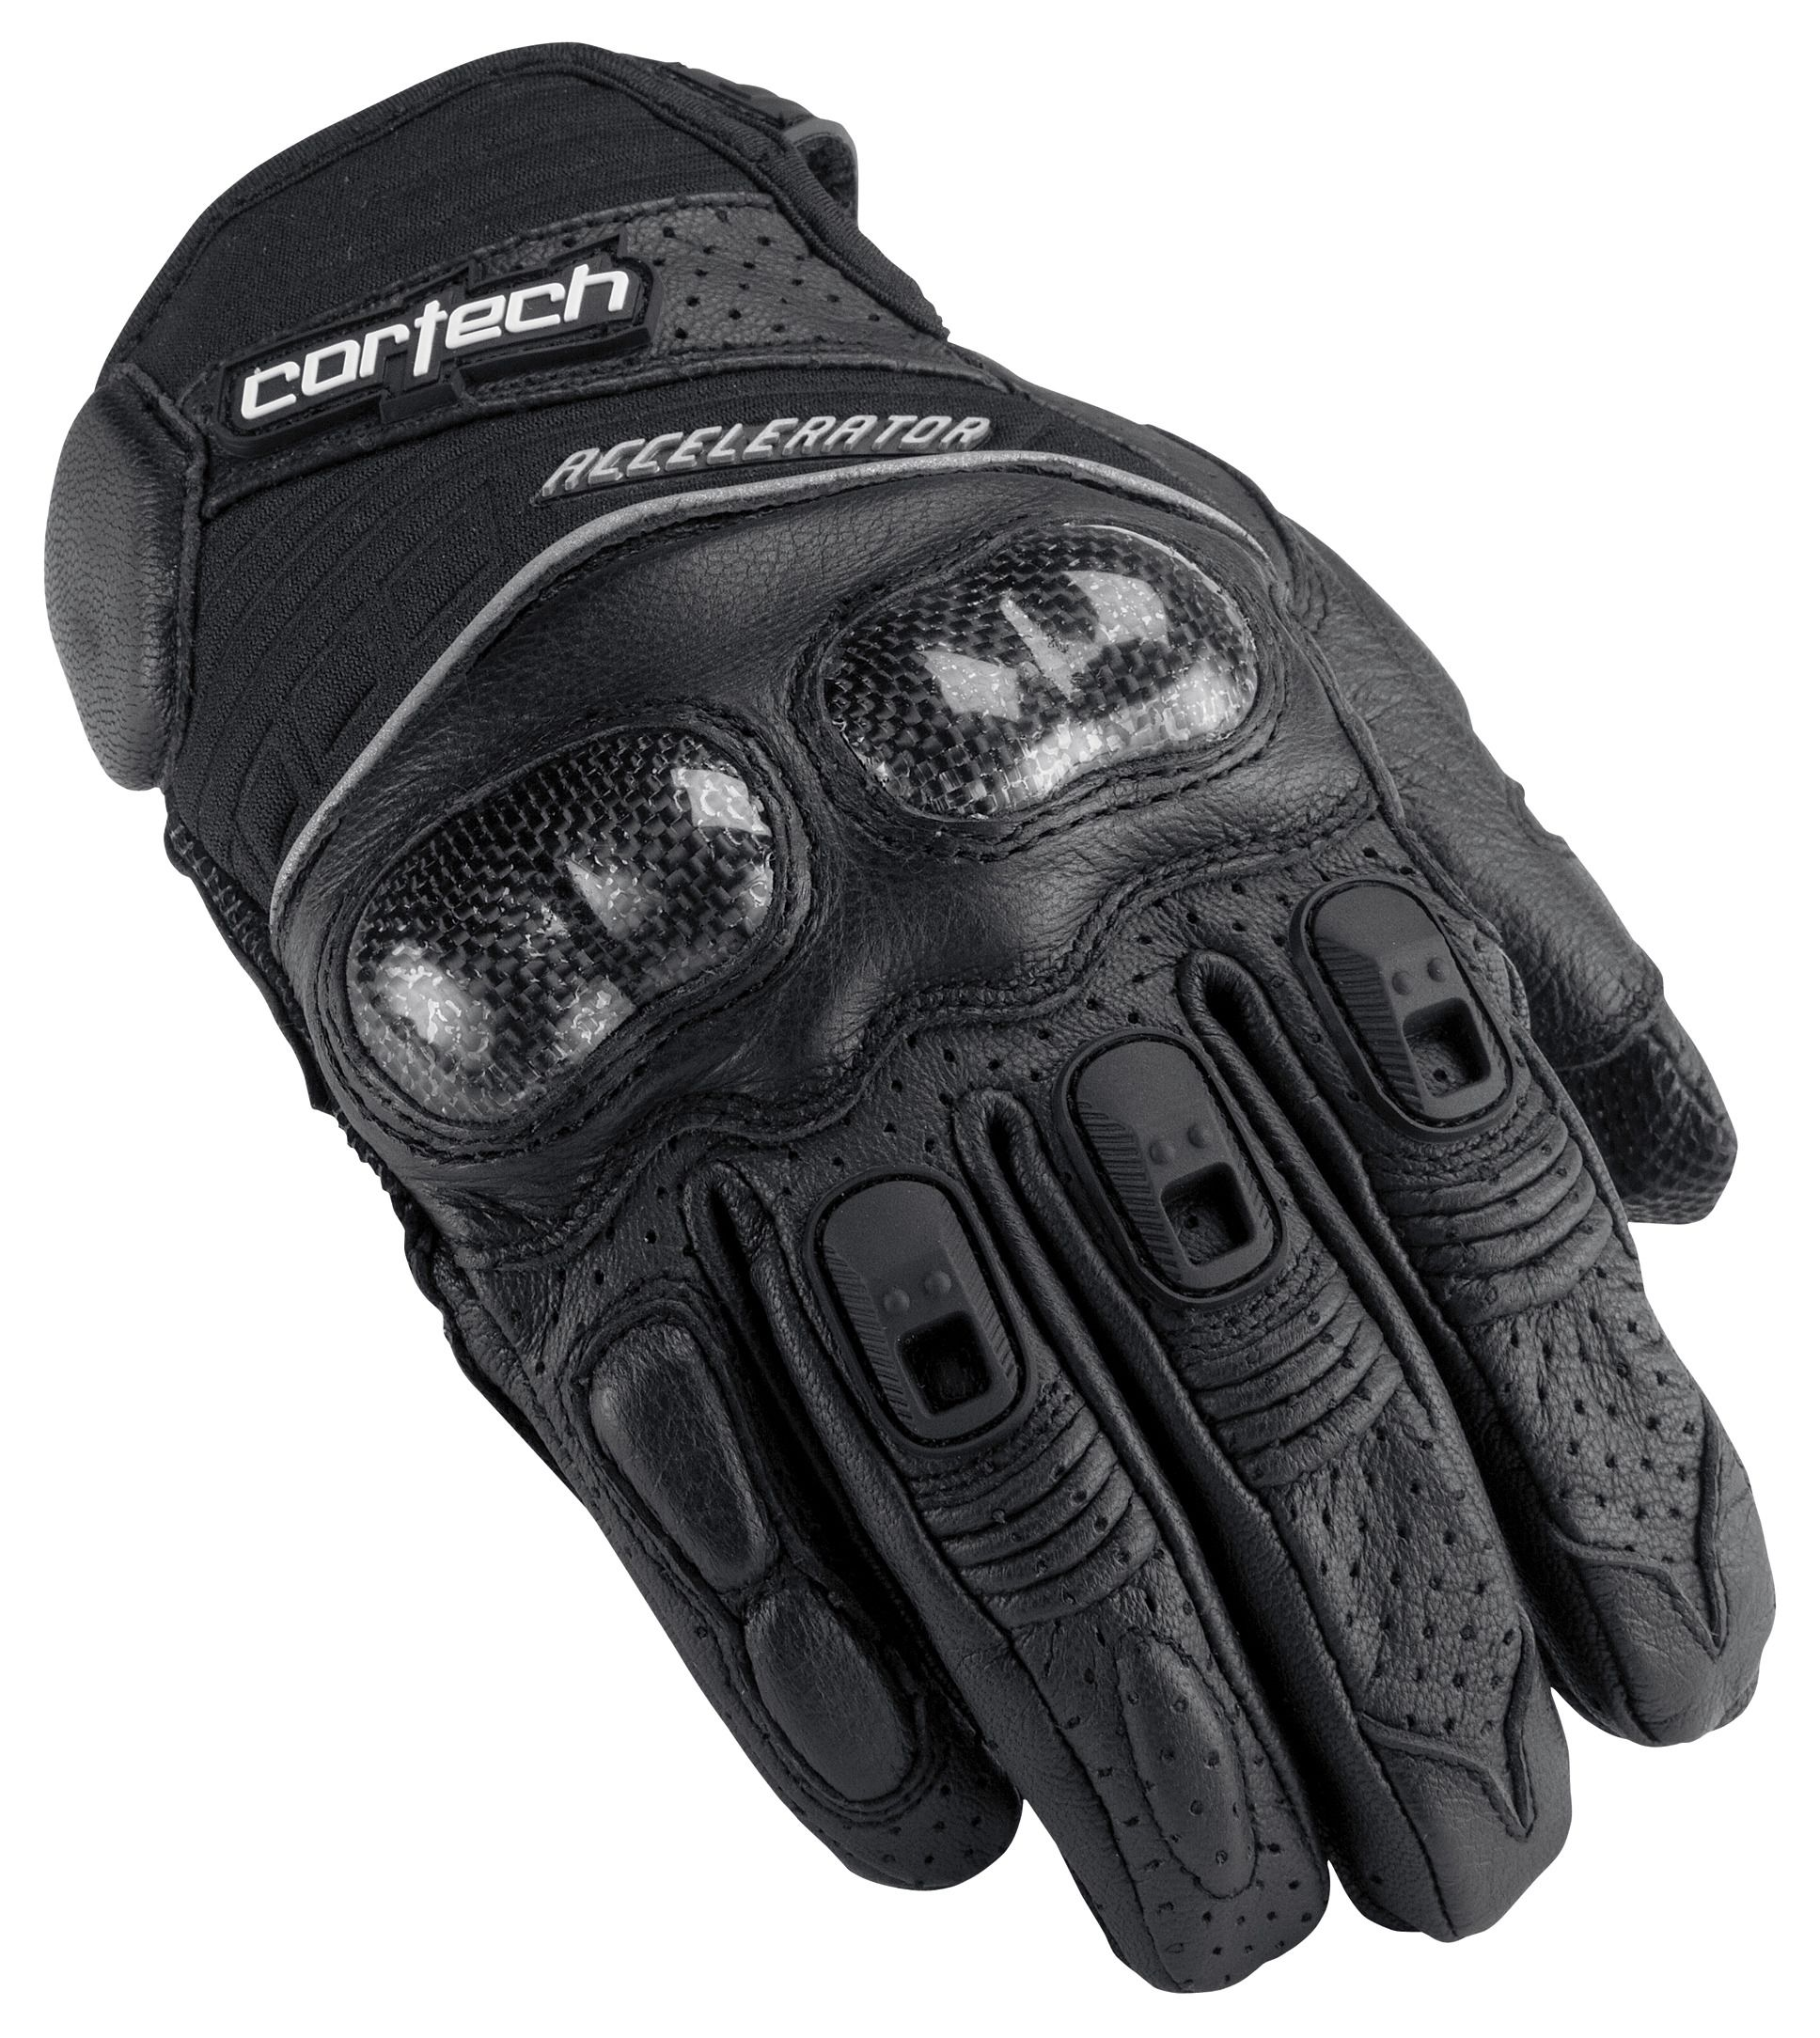 Motorcycle gloves tight or loose - Motorcycle Gloves Tight Or Loose 7